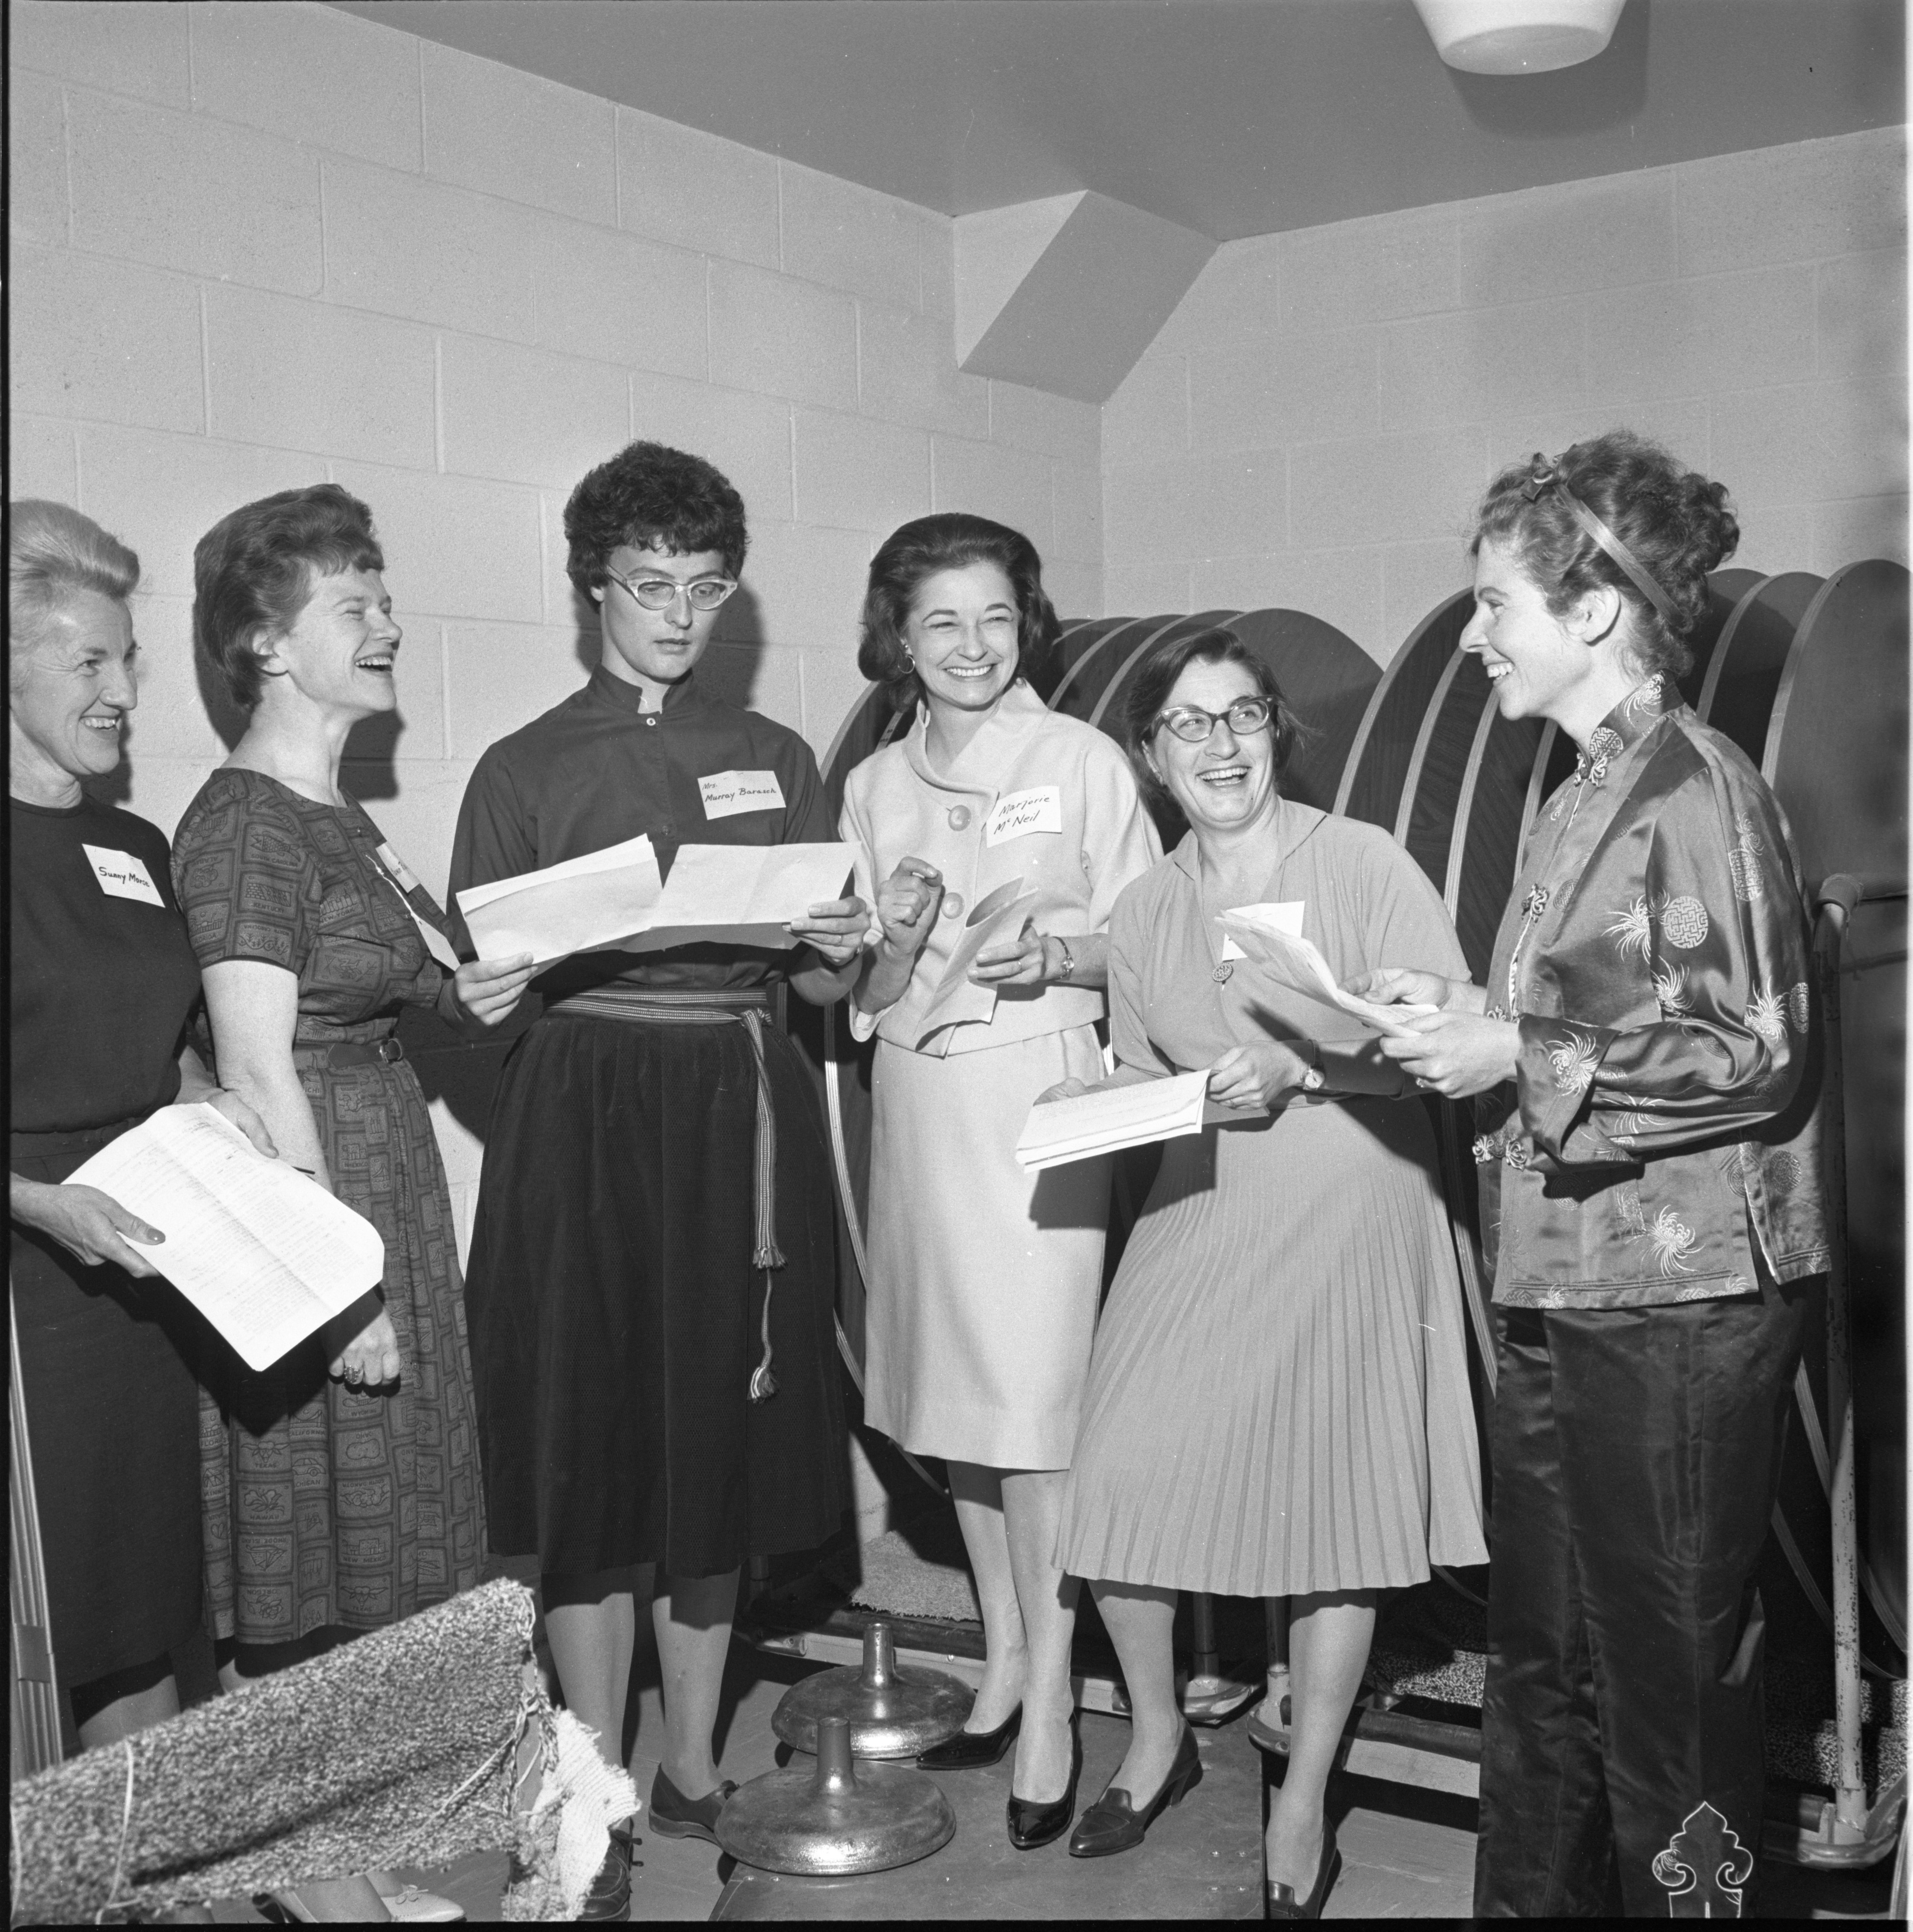 Ladies Enjoy The Conversation At The League Of Women Voters Membership Coffee, September 1963 image